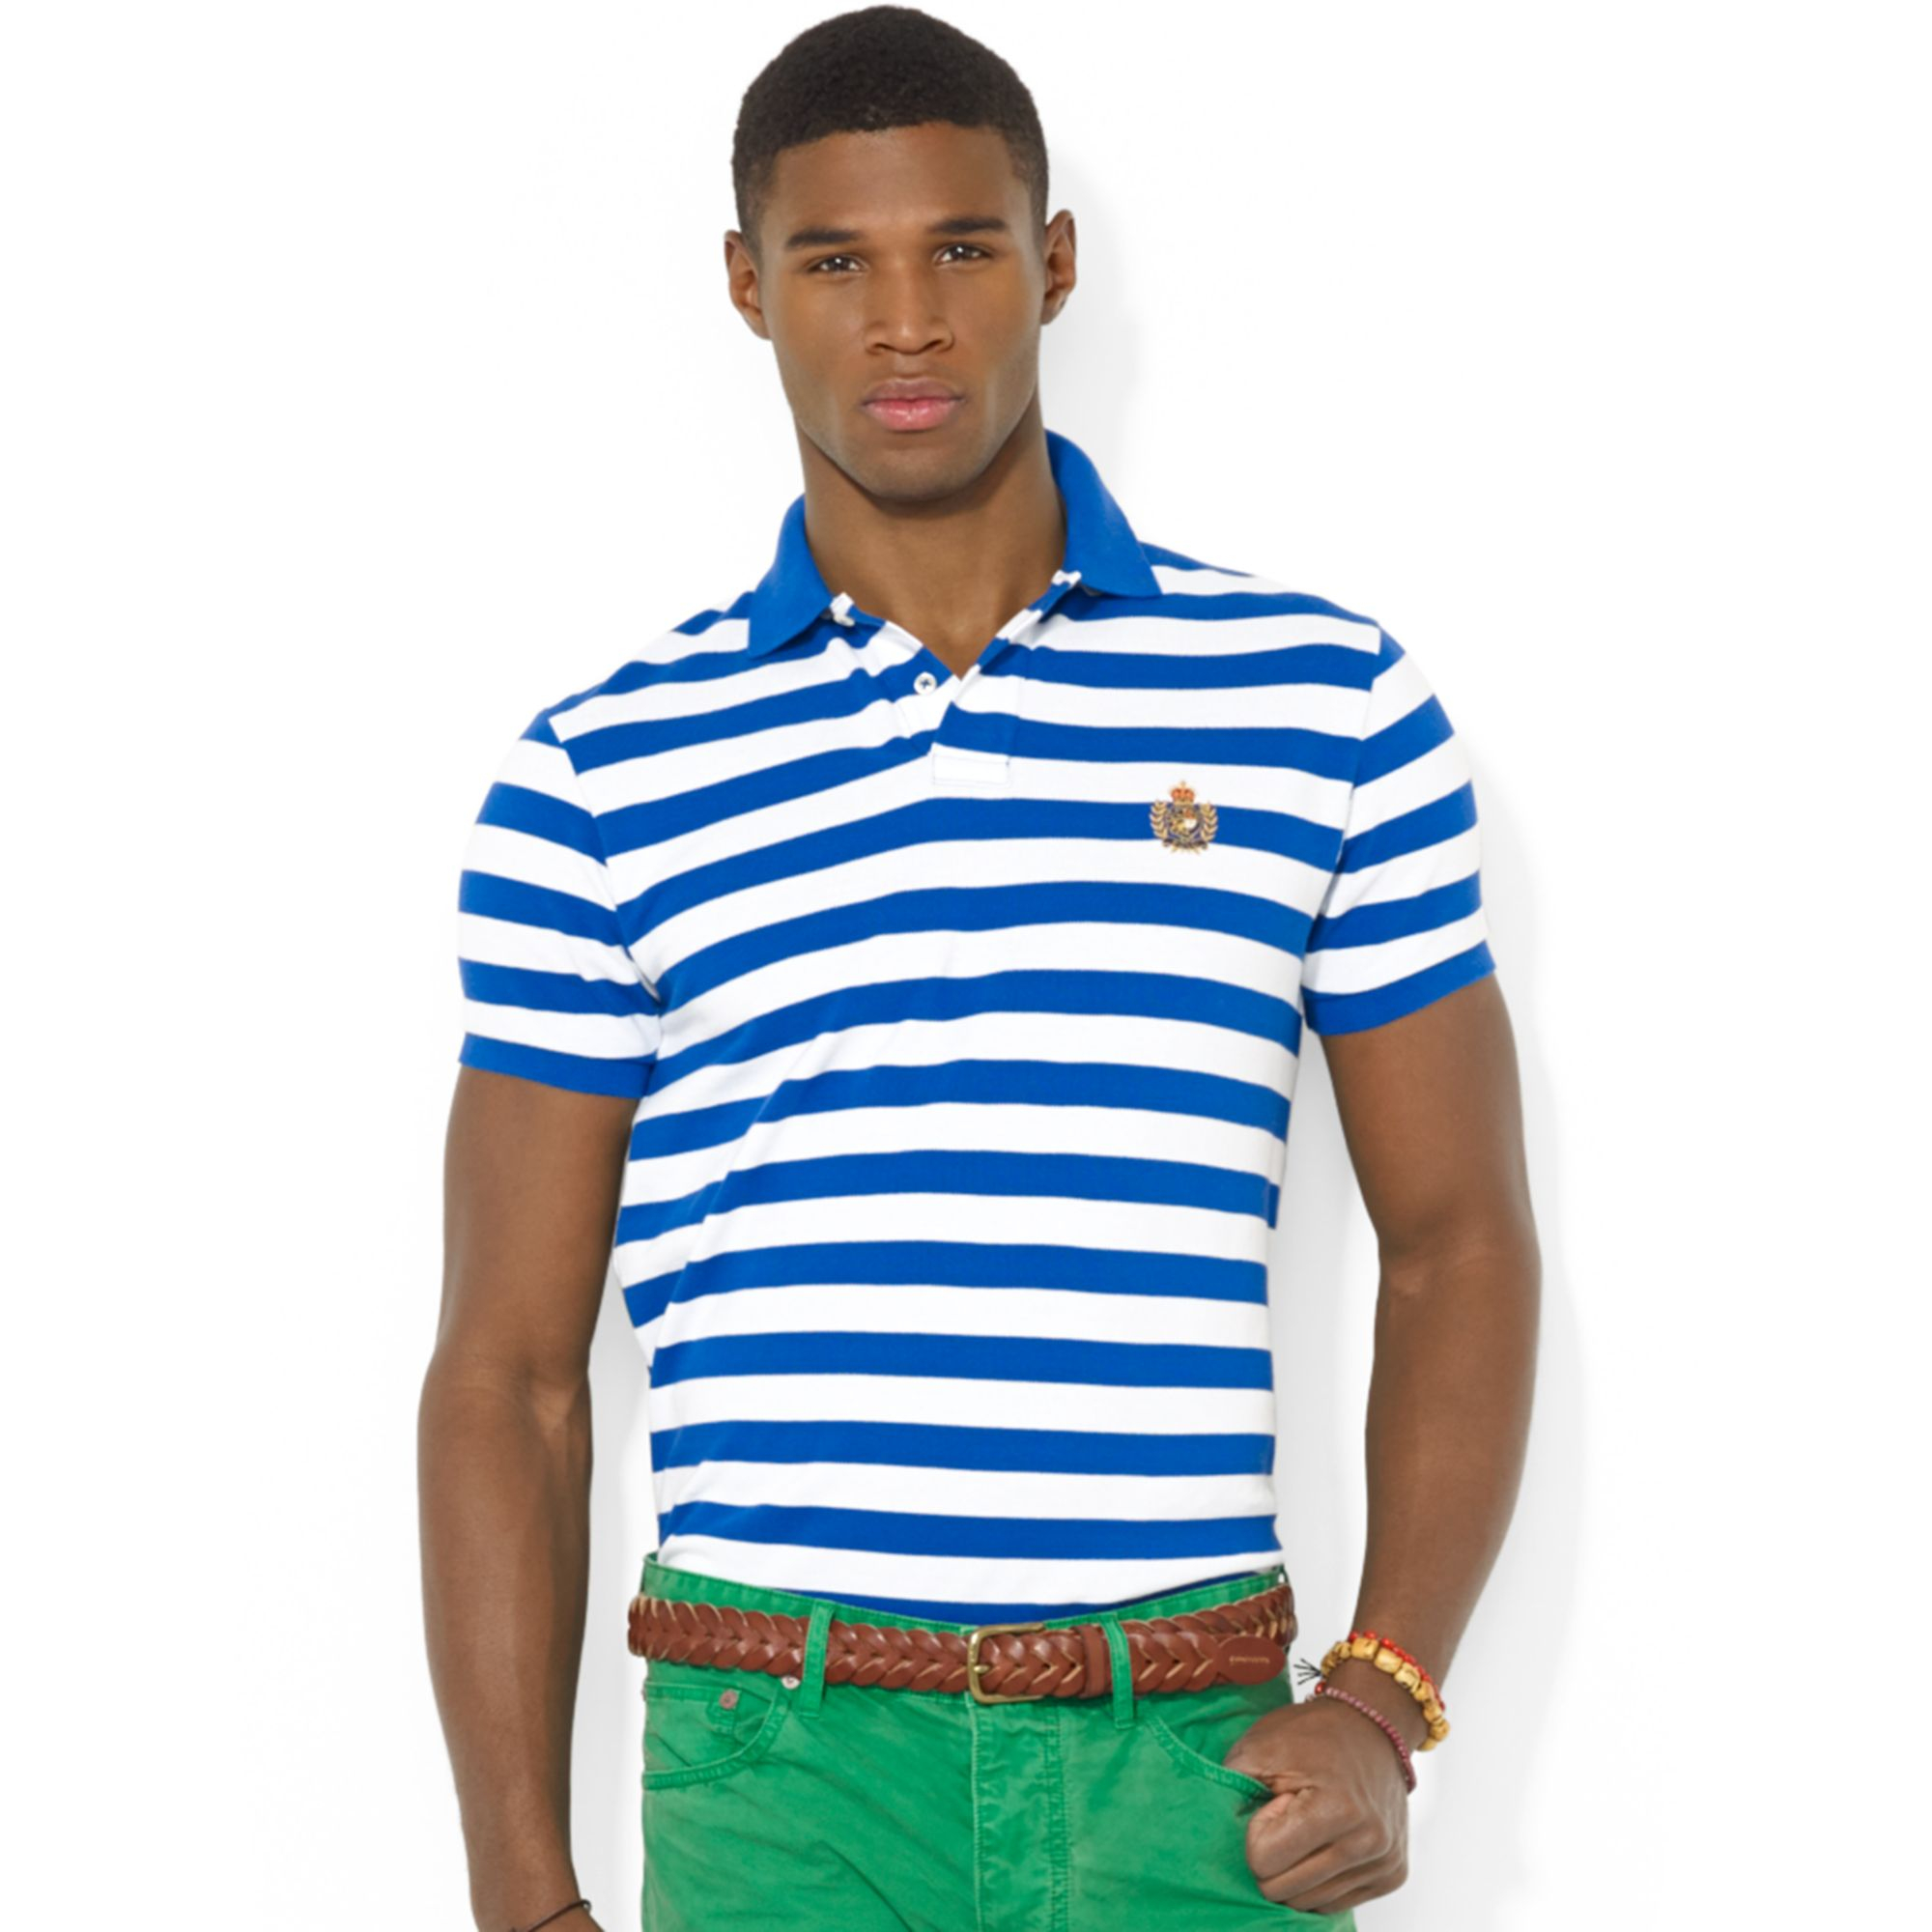 561c2f2ec1584 Polo ralph lauren Polo Classicfit Heritage Crest Striped Mesh Polo in Blue  for Men